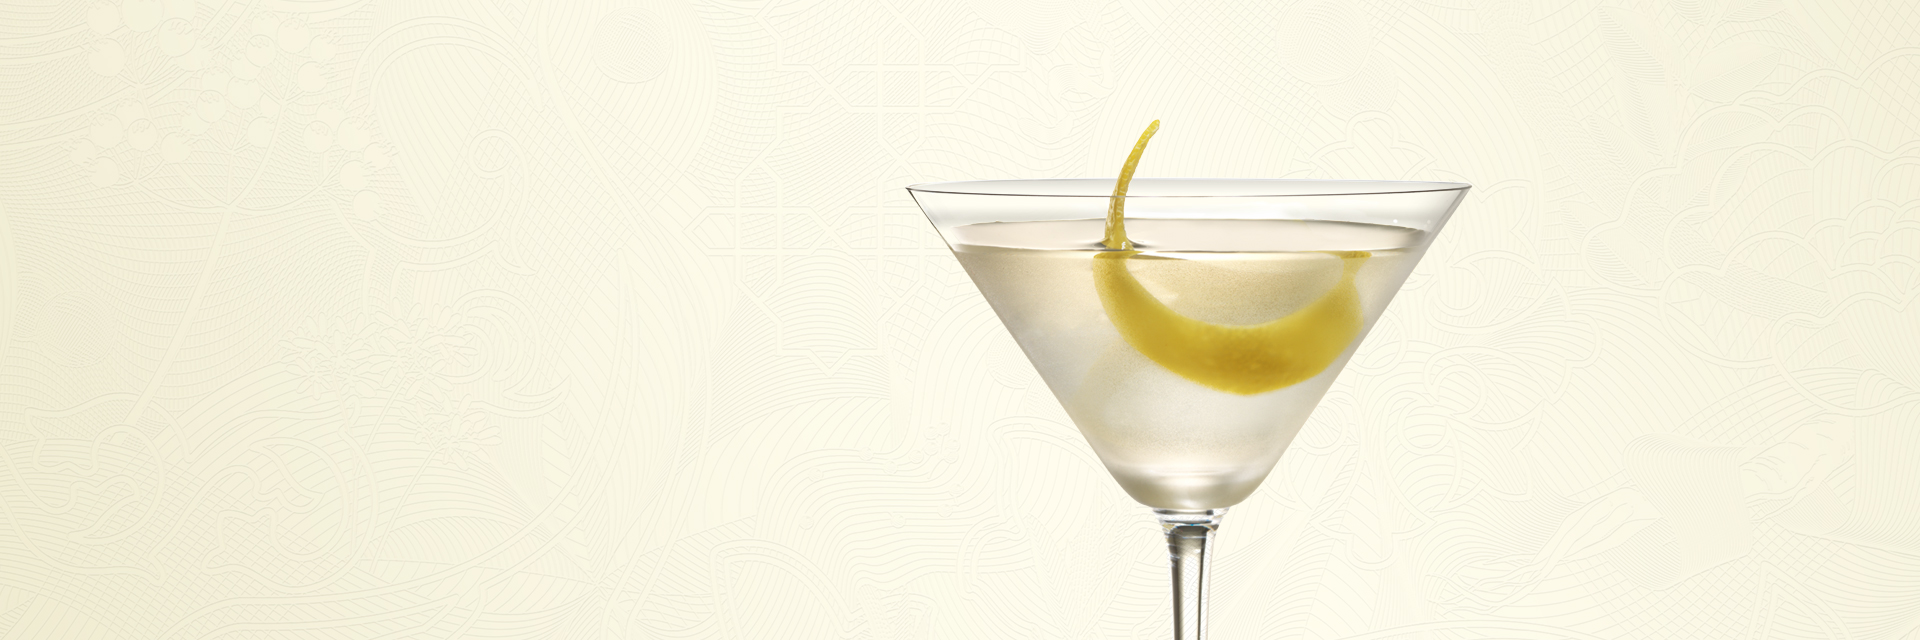 BOMBAY SAPPHIRE MARTINI COCKTAIL